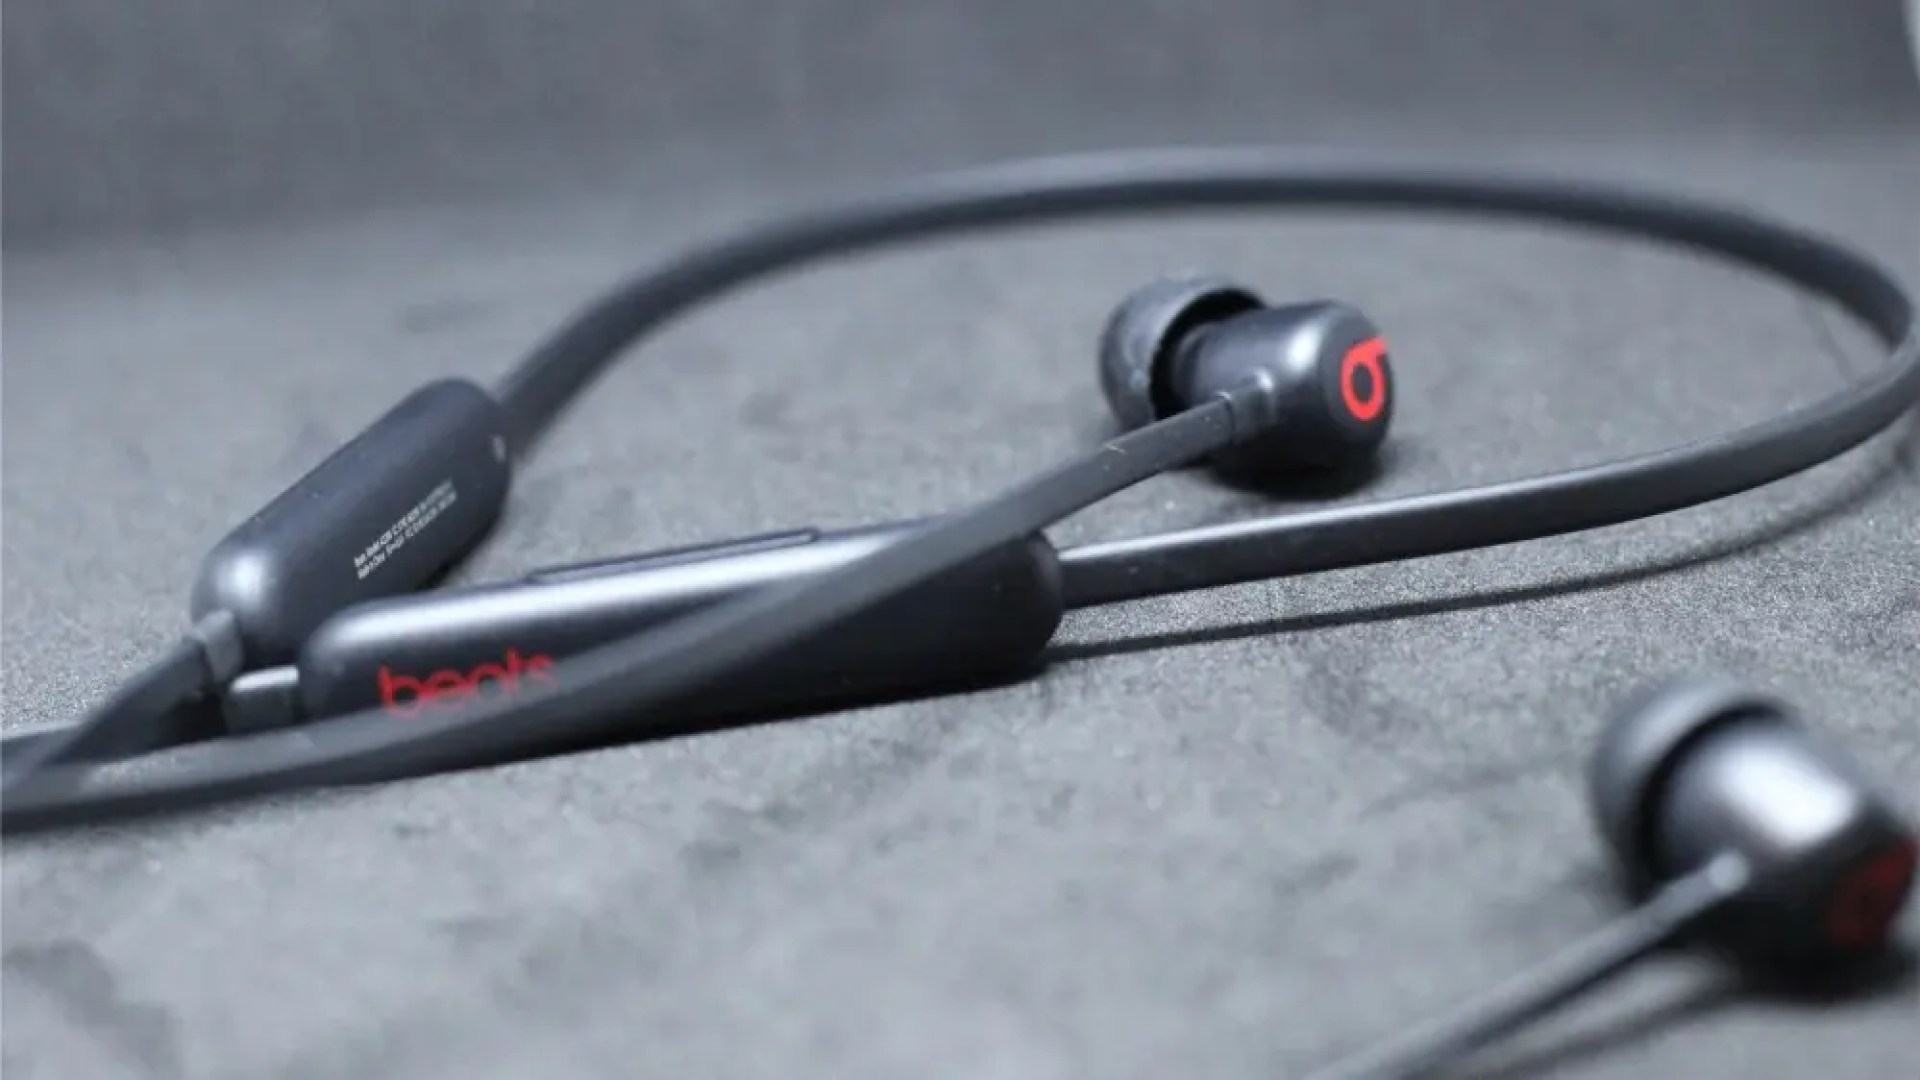 The Beats Flex in black on a black matte background, one earbud and the Beats logo in focus